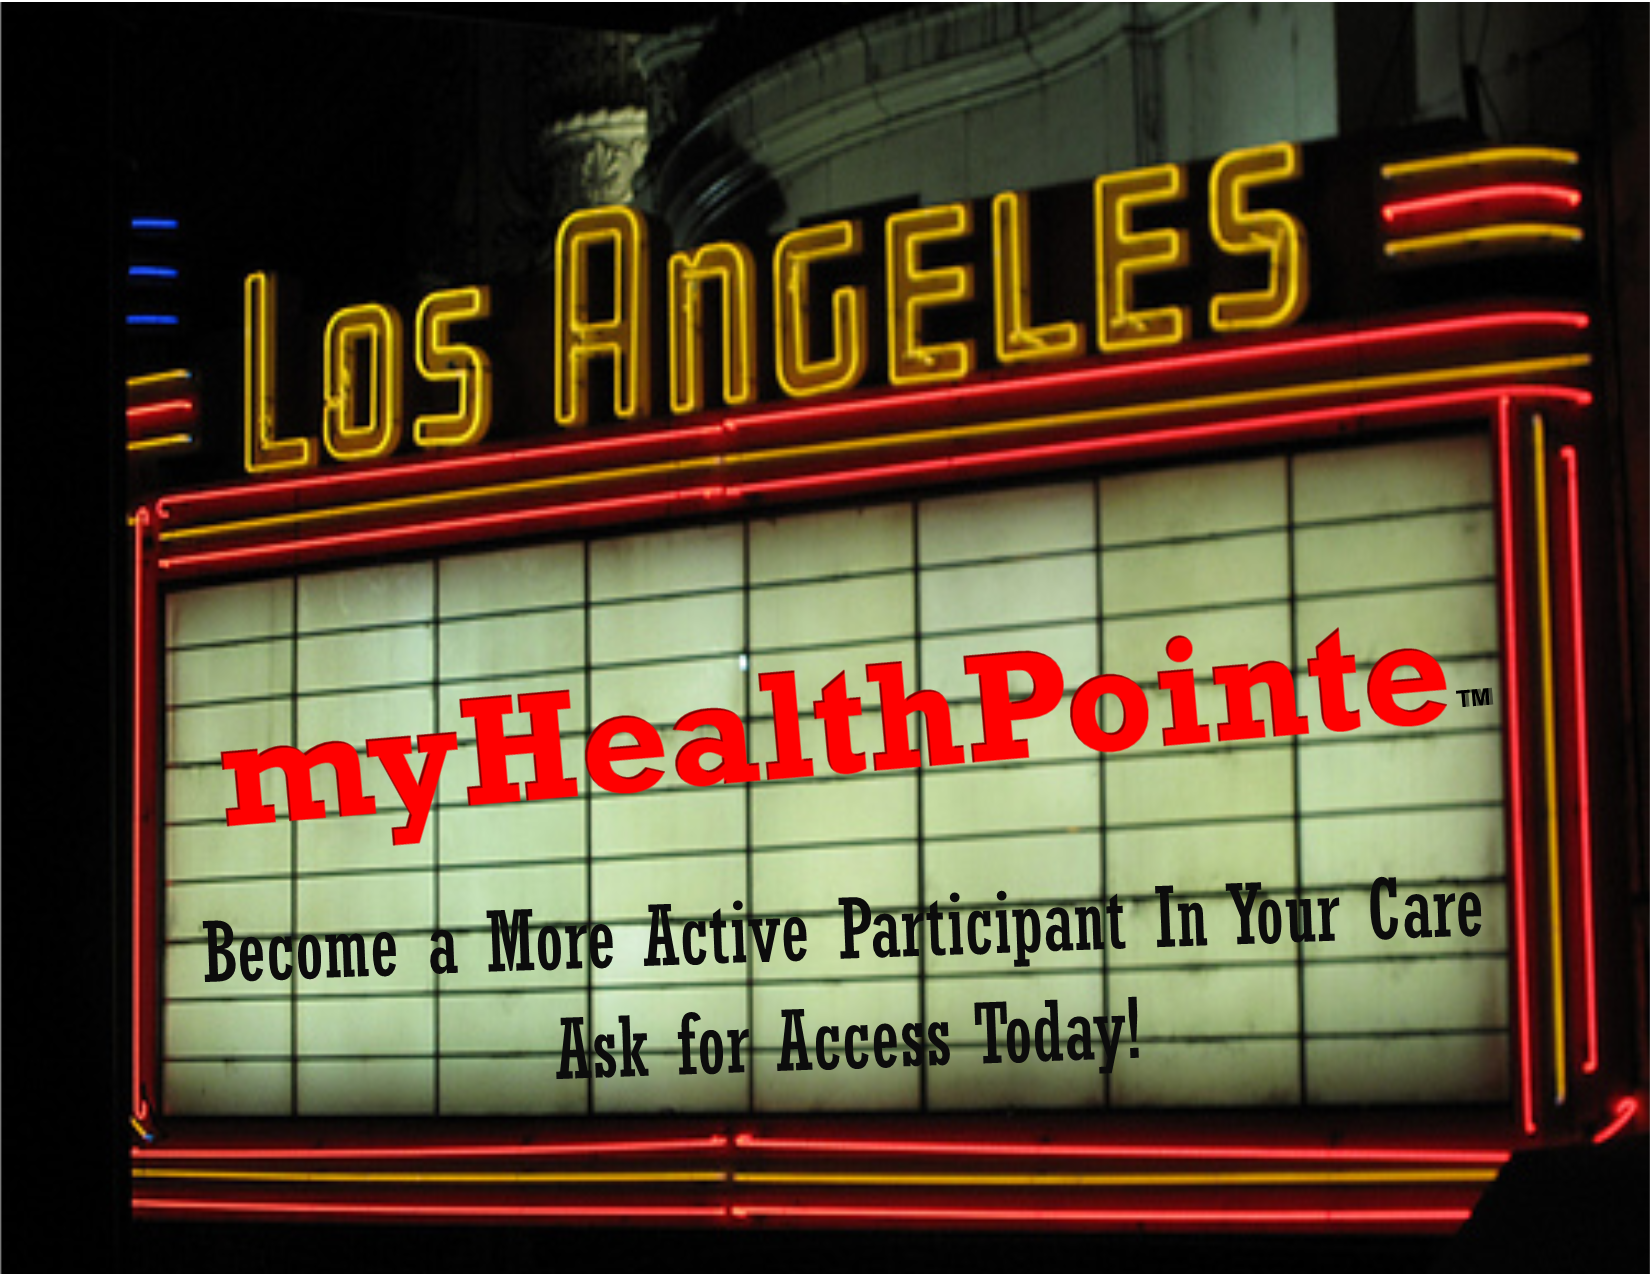 myHealthPointe